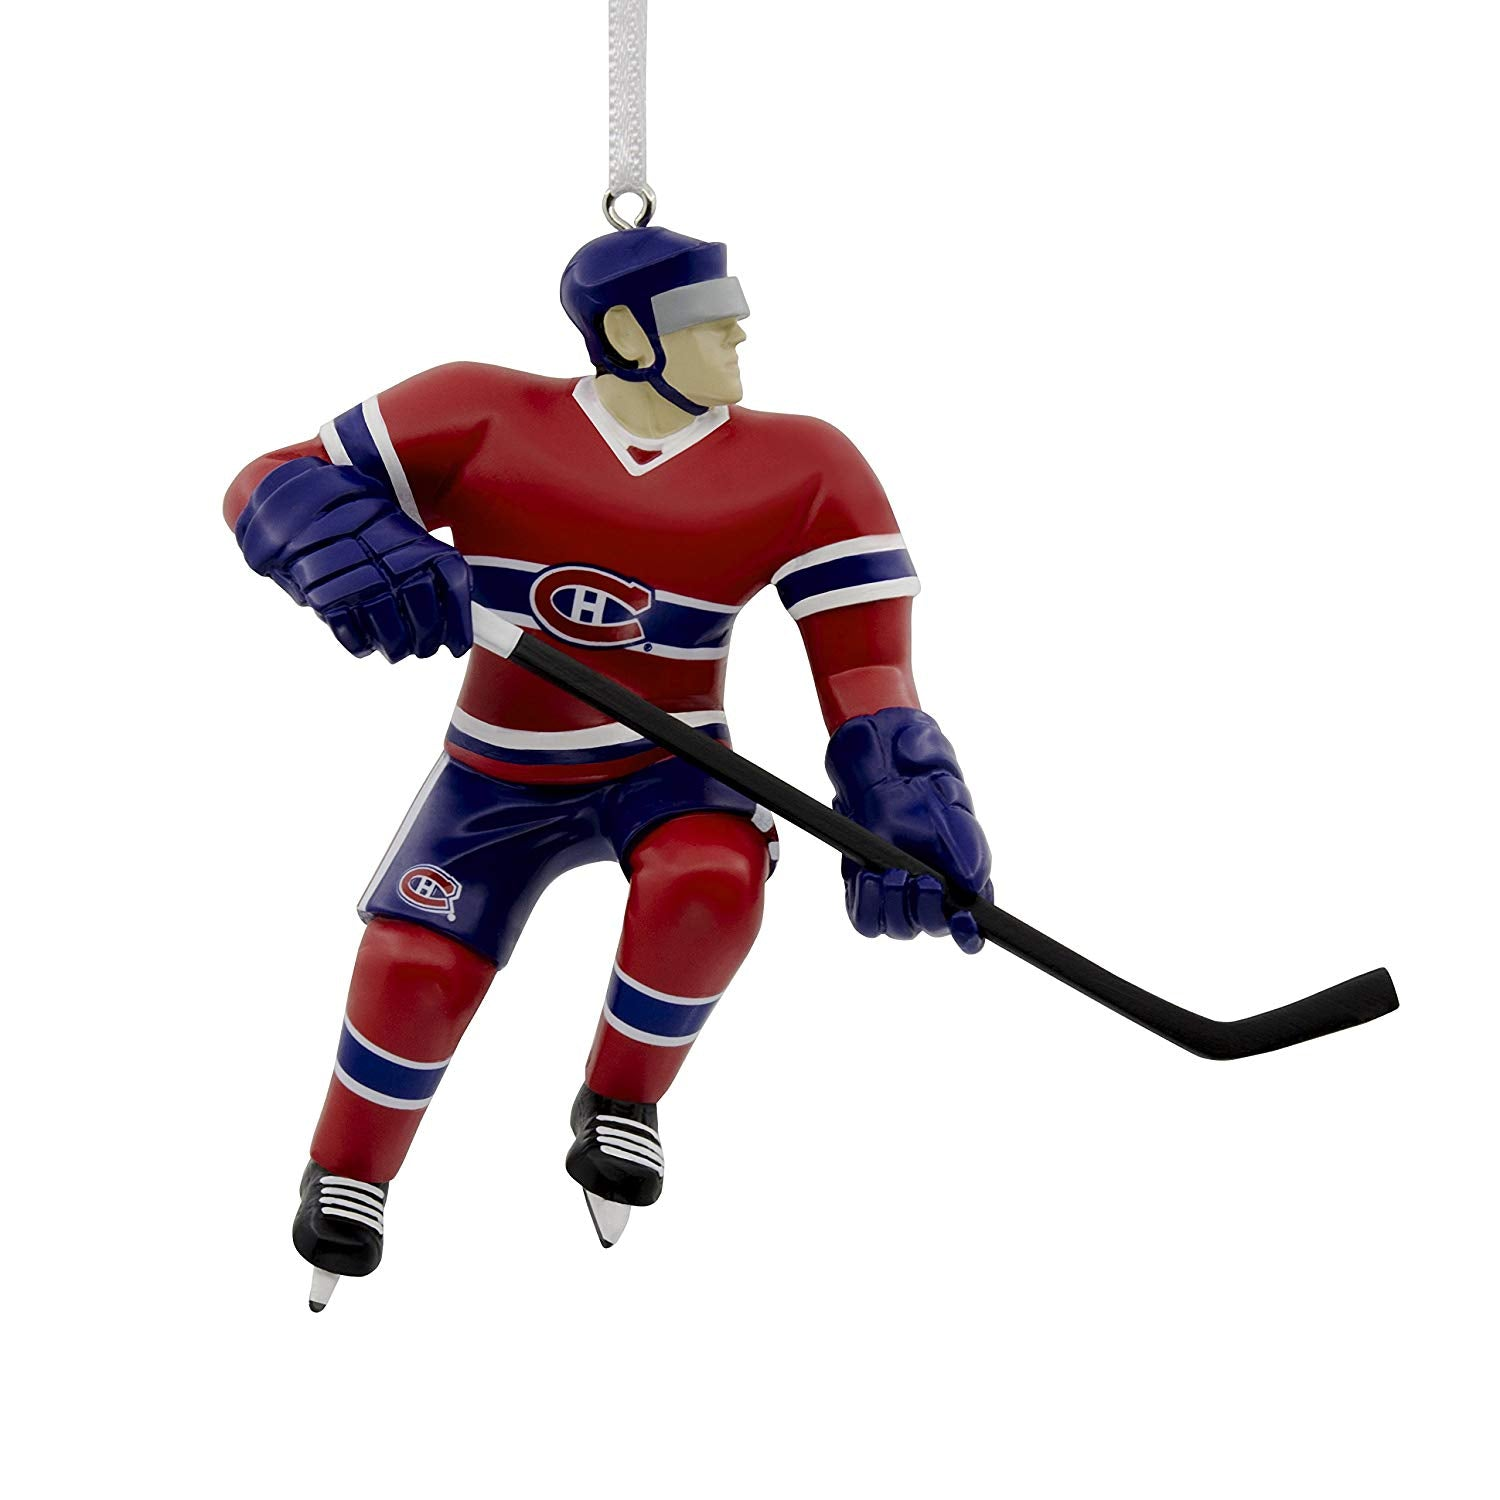 NHL Montreal Canadiens Hallmark Ornament